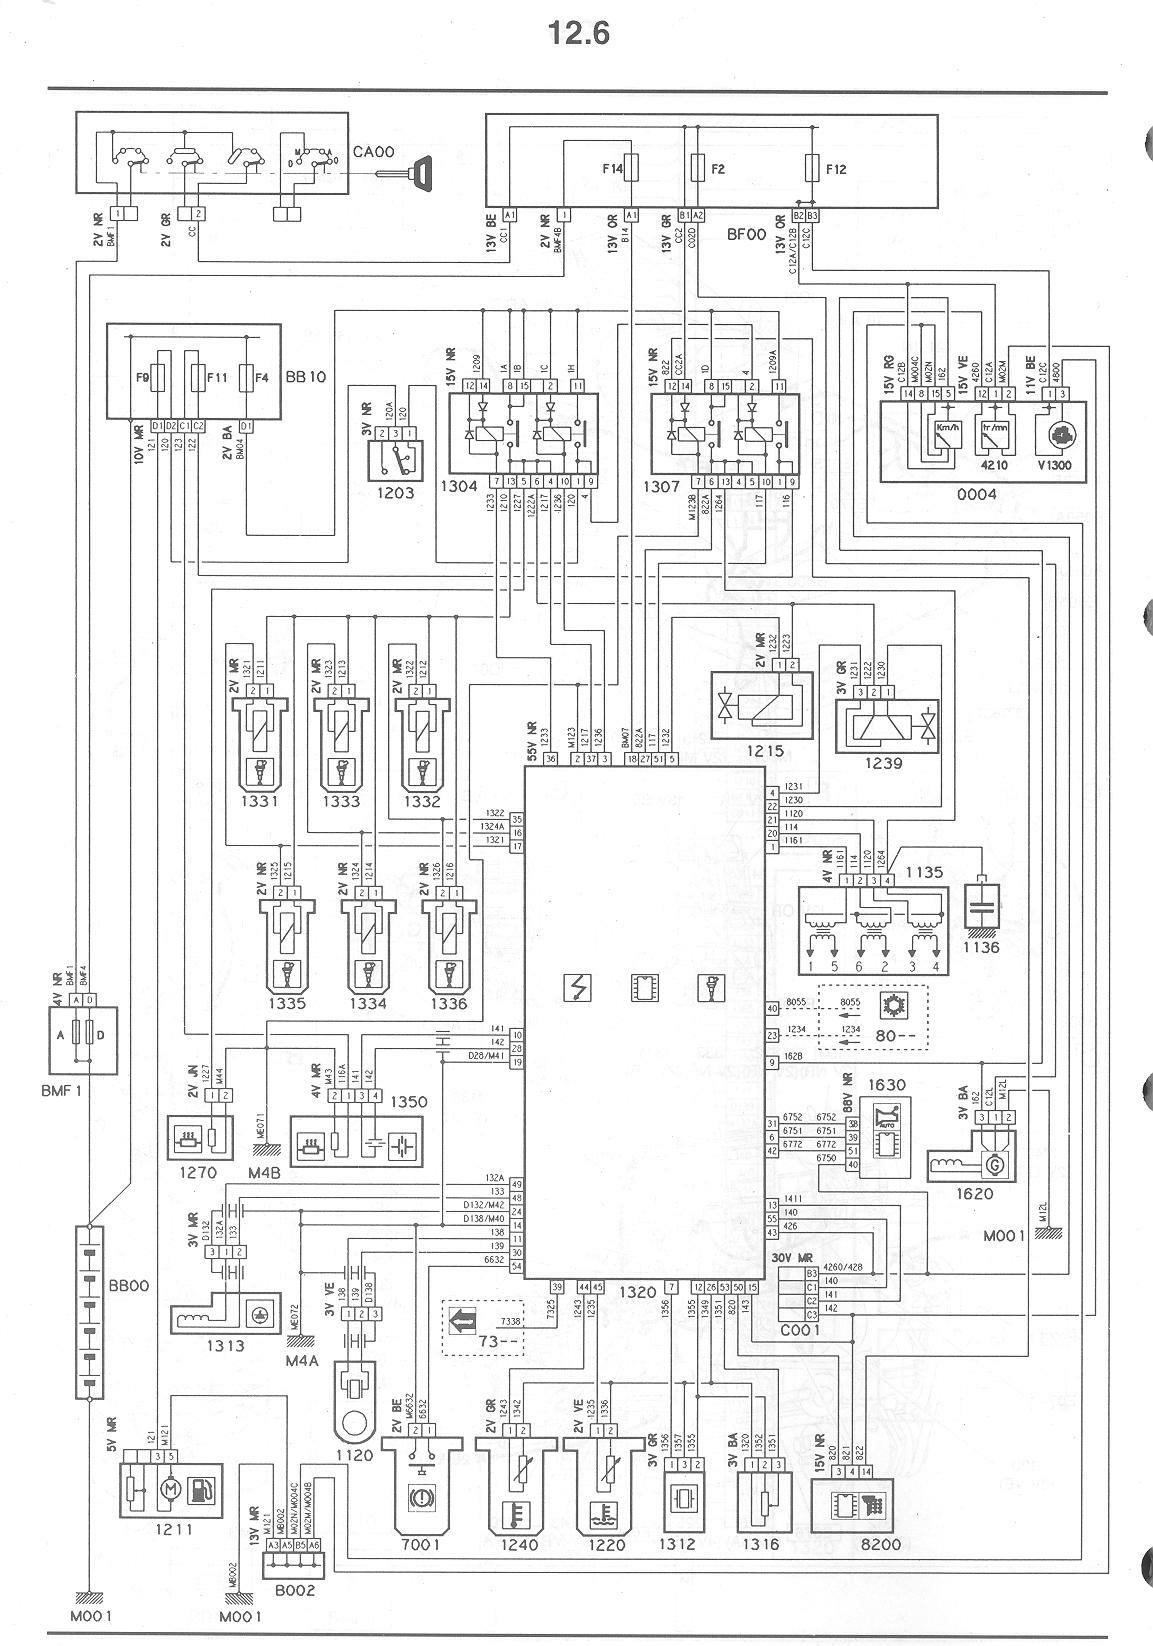 citroen xm forum bull view topic wiring diagram for keypad circuit showing the connections between the keypad and ecu the keypad is item 8200 it might just make it a little easier to understand